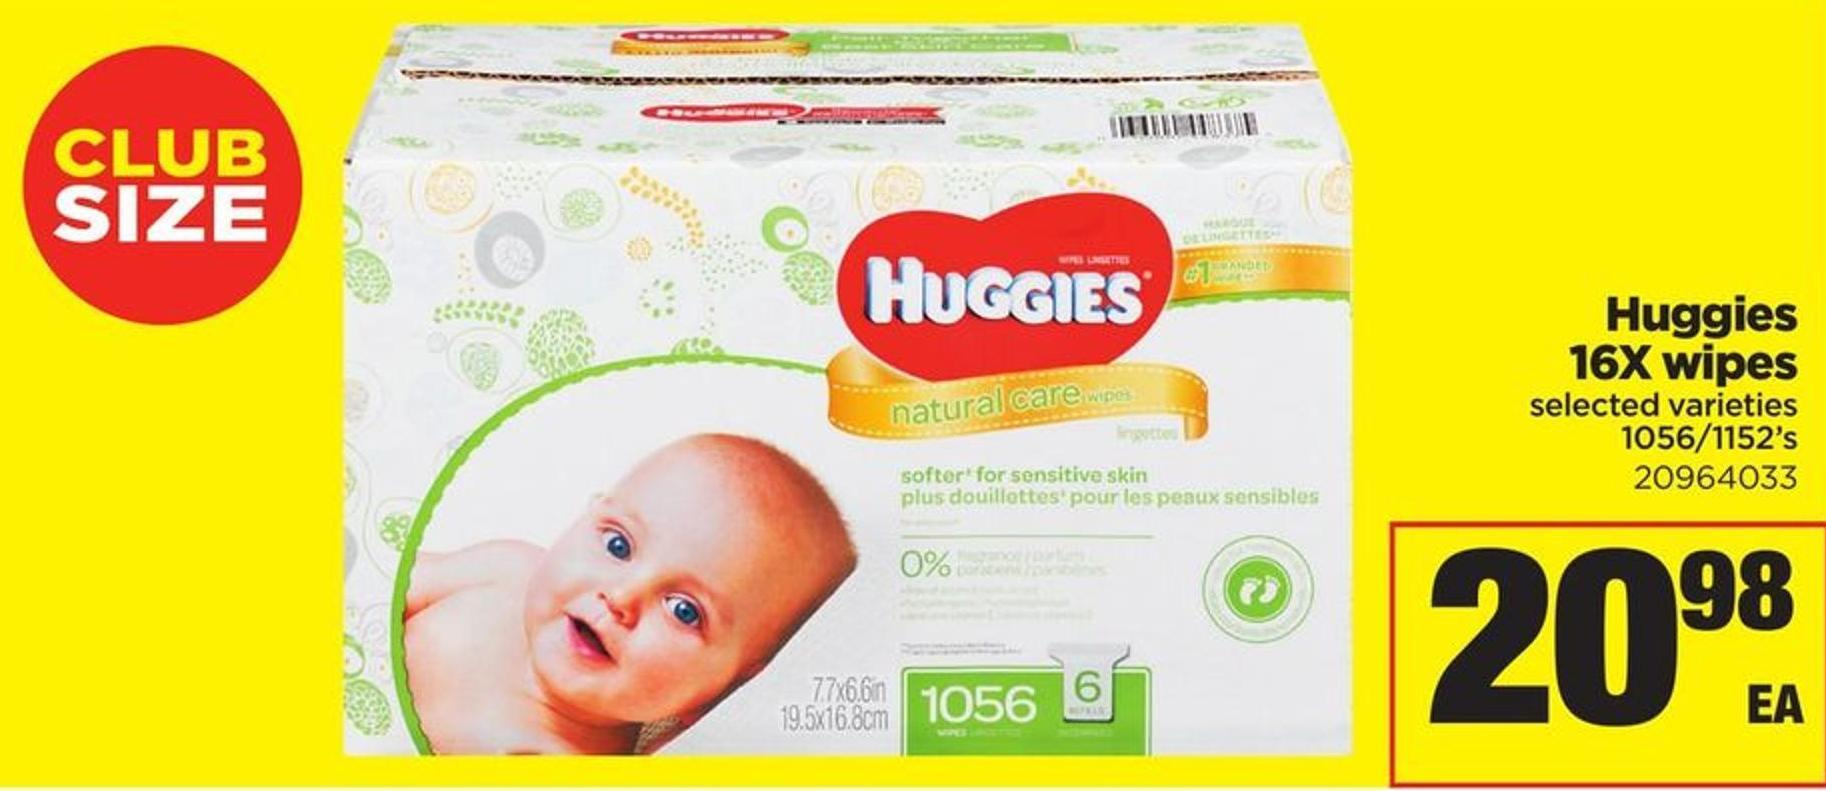 Huggies 16xwipes - 1056/1152's